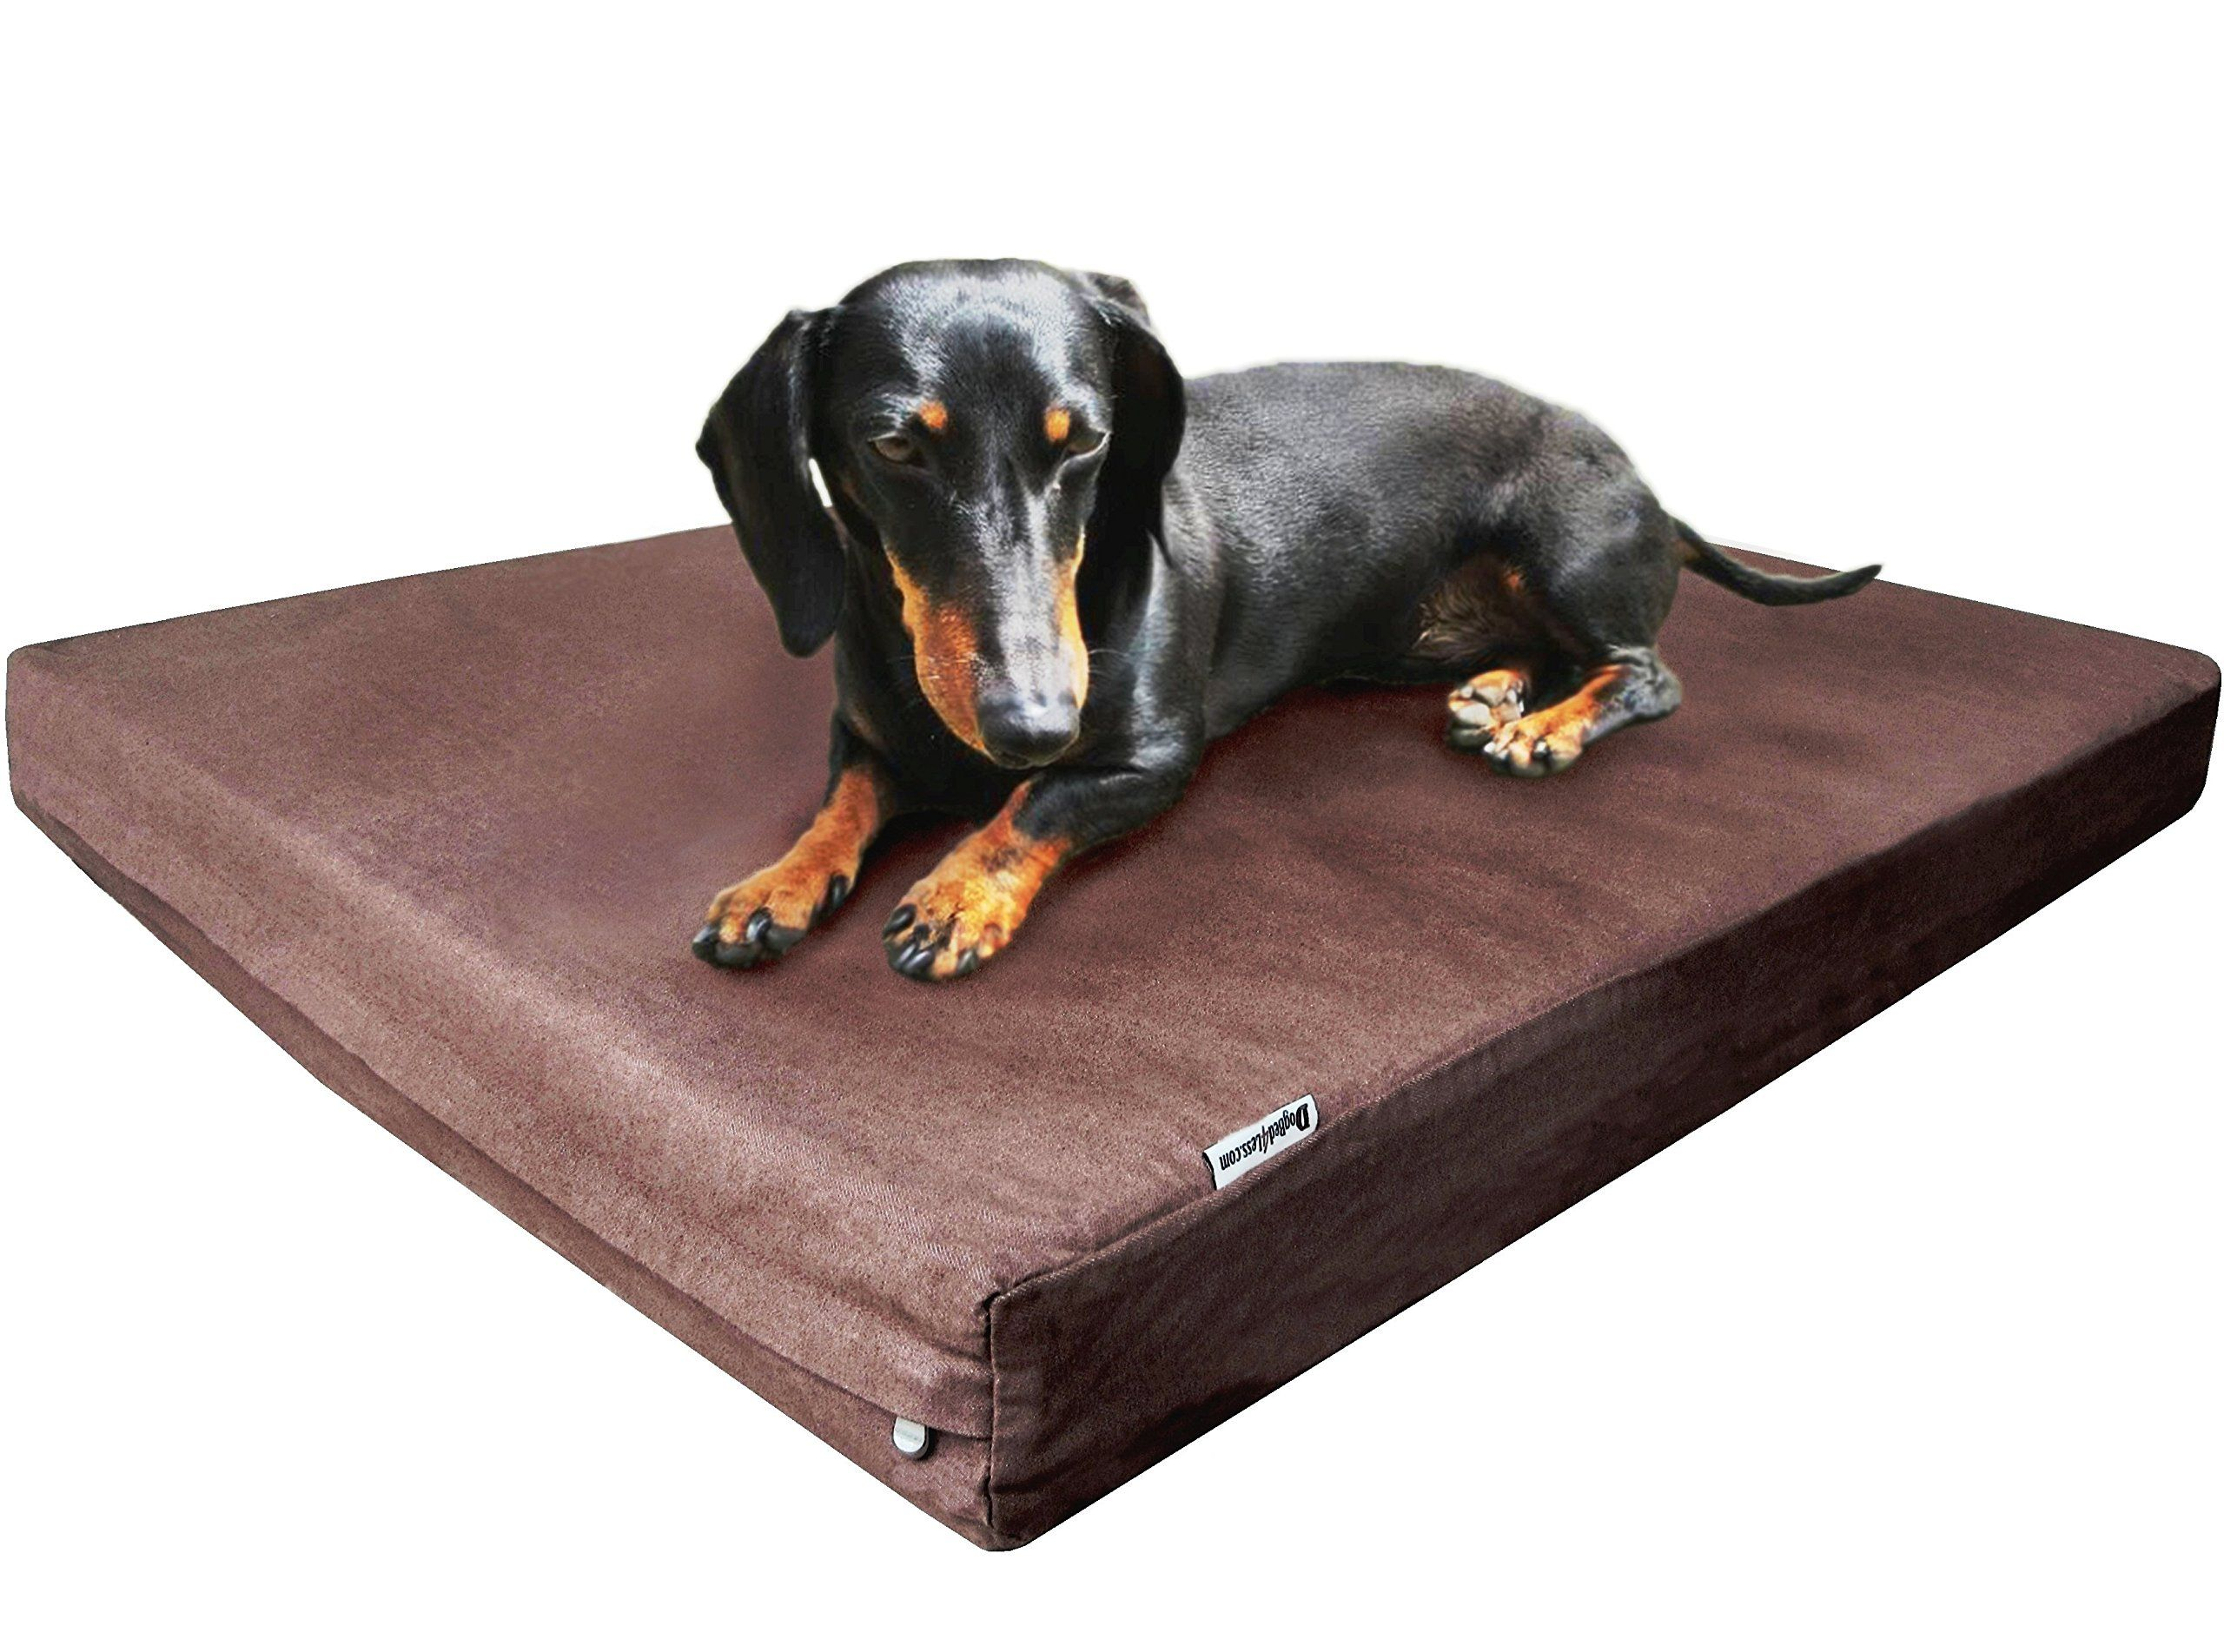 Pin By Joann F On About Dogs Orthopedic Dog Bed Memory Foam Dog Bed Dog Bed